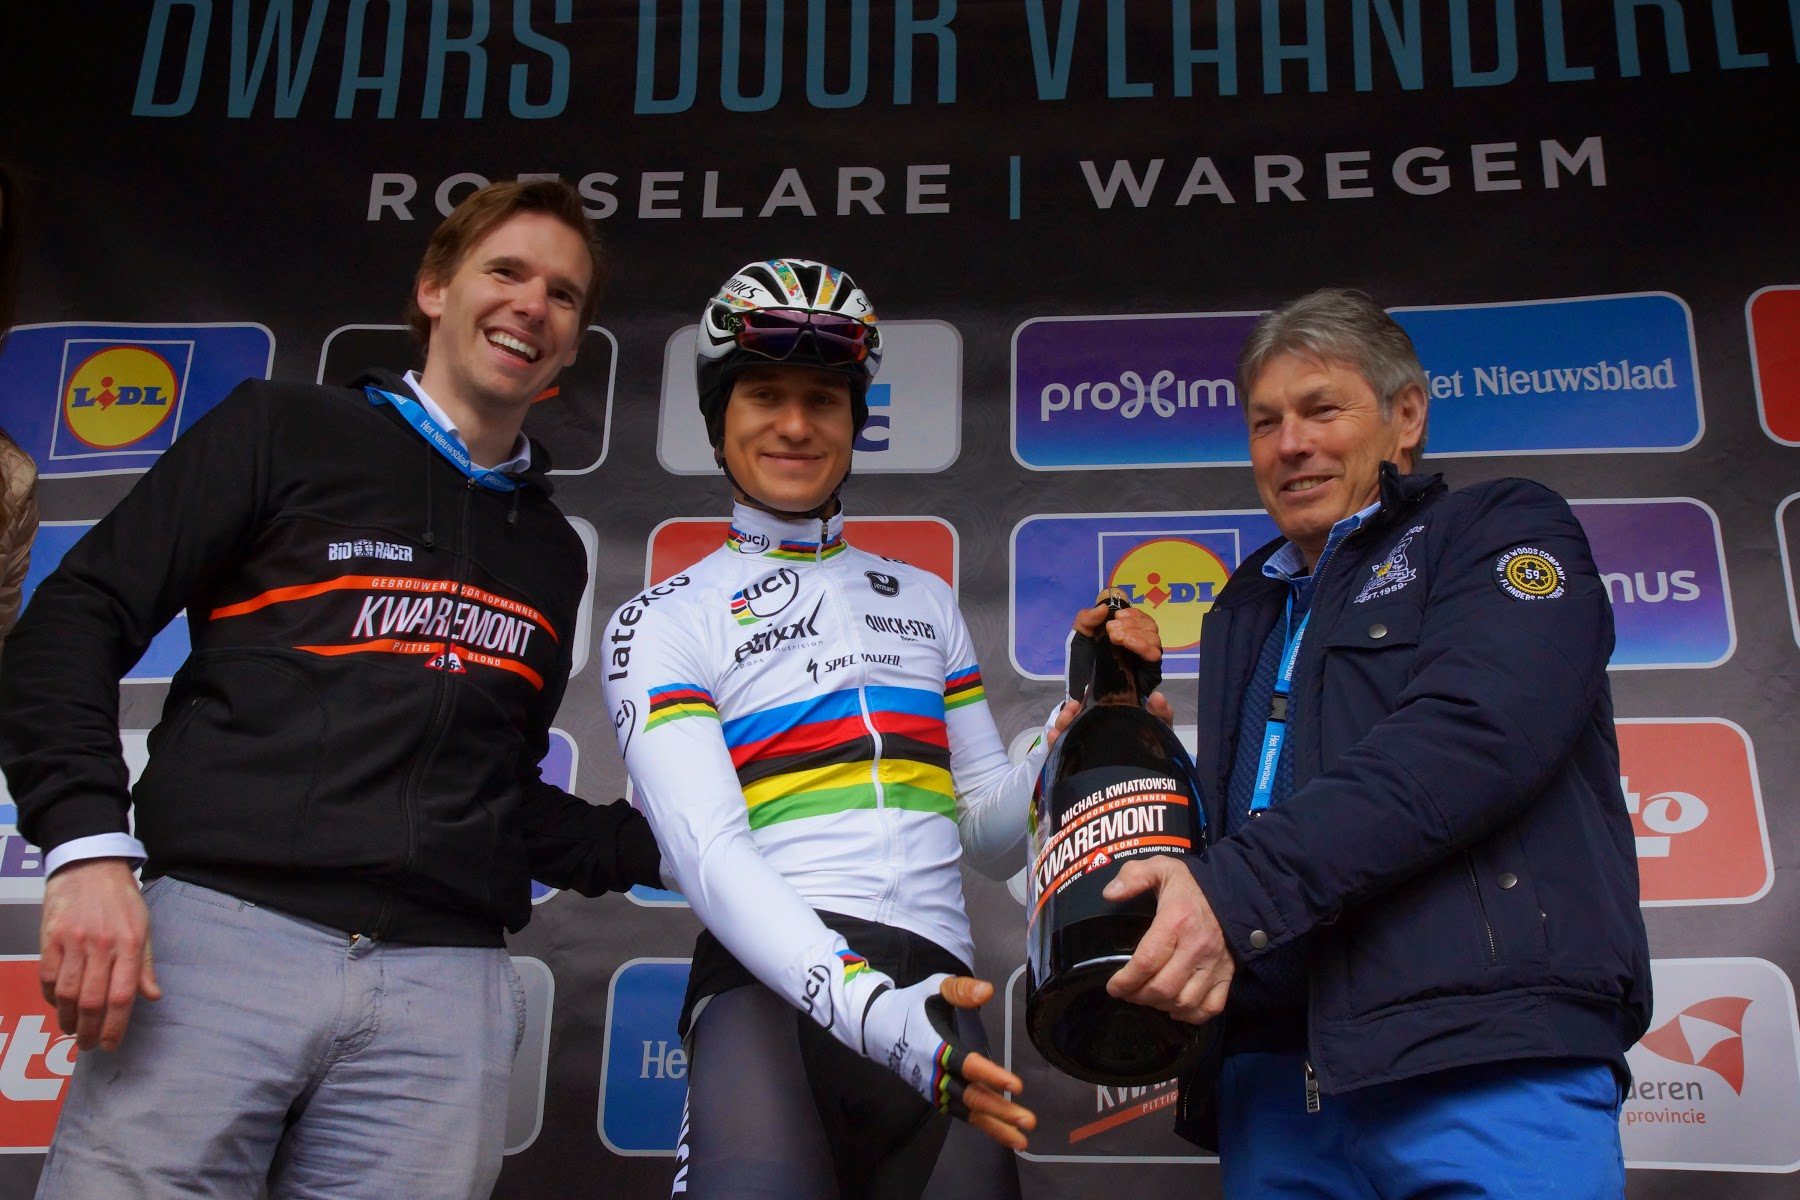 Start 70e Dwars door Vlaanderen in Roeselare